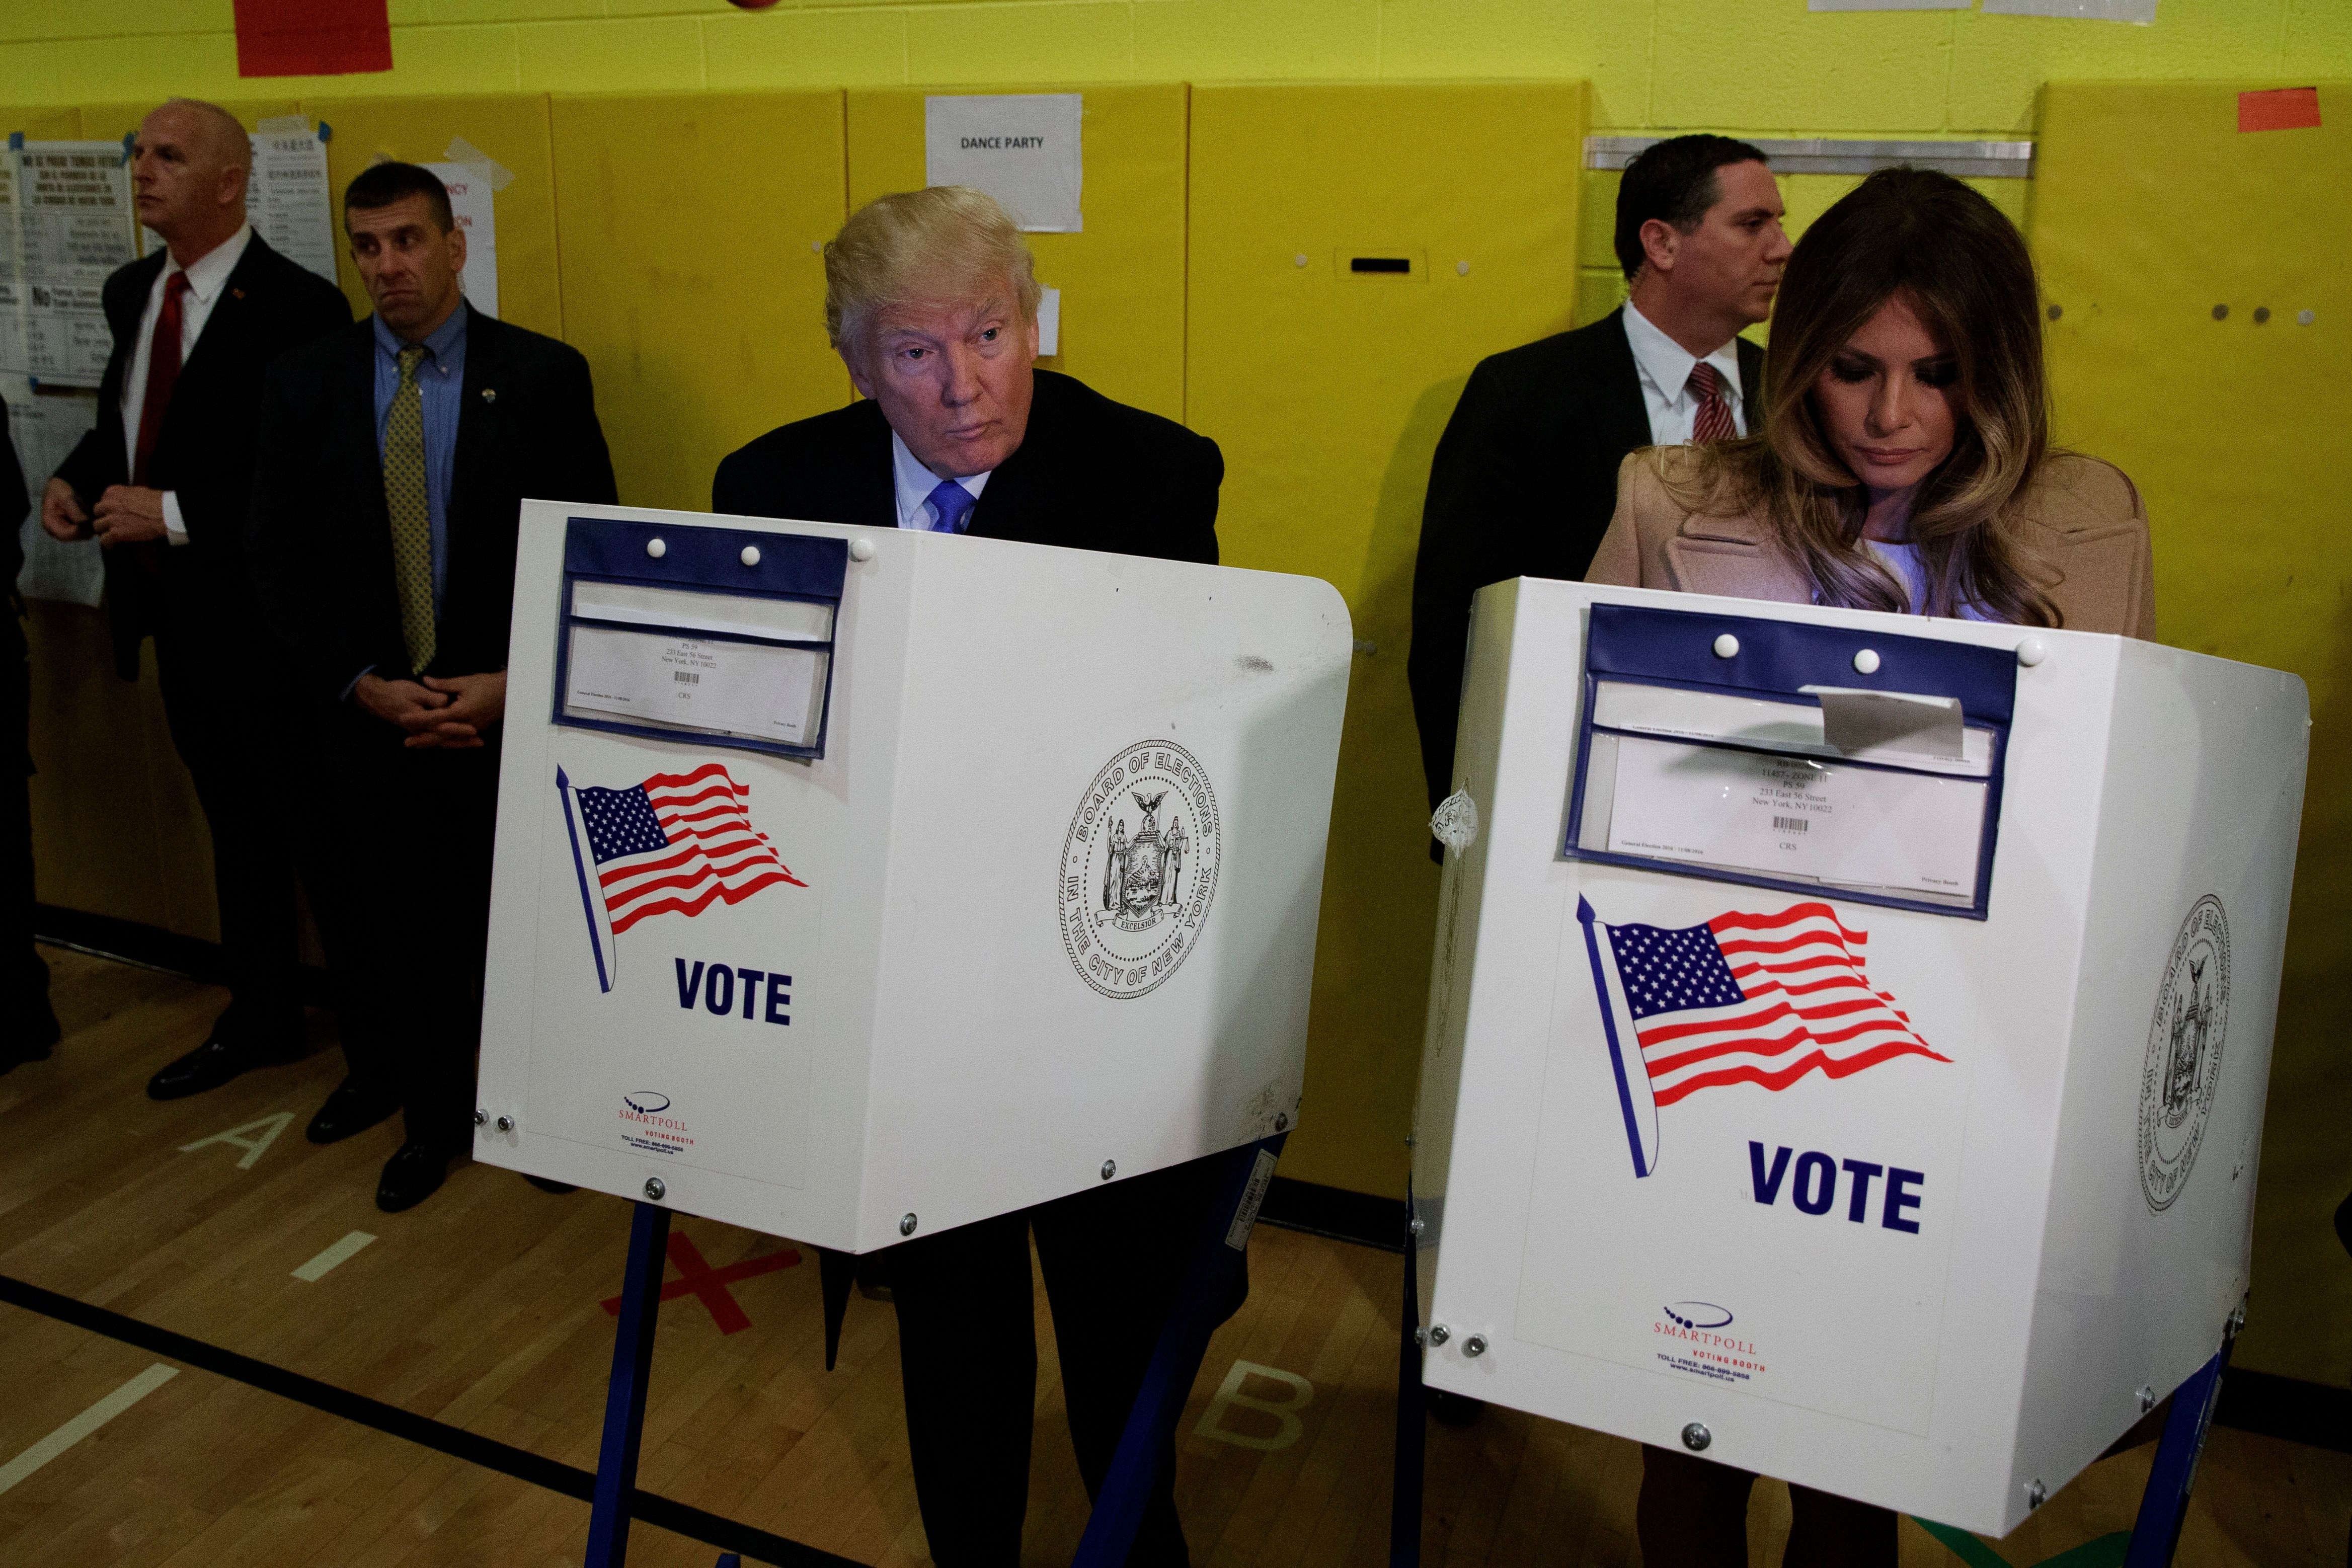 Donald Trump Just Got Brutally Booed At His Own Polling